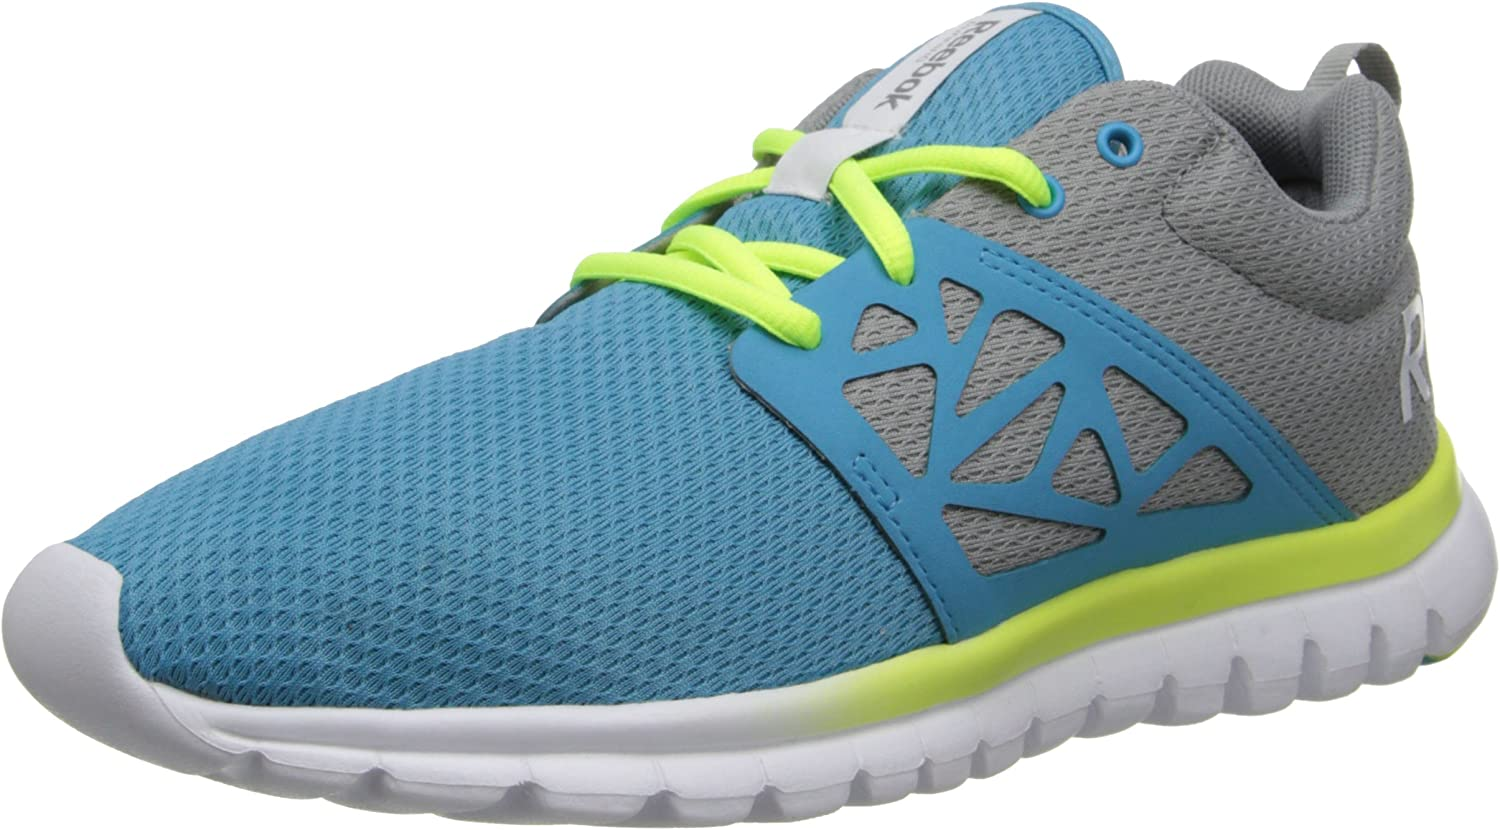 Reebok Women's Sublite Authentic Running shoes